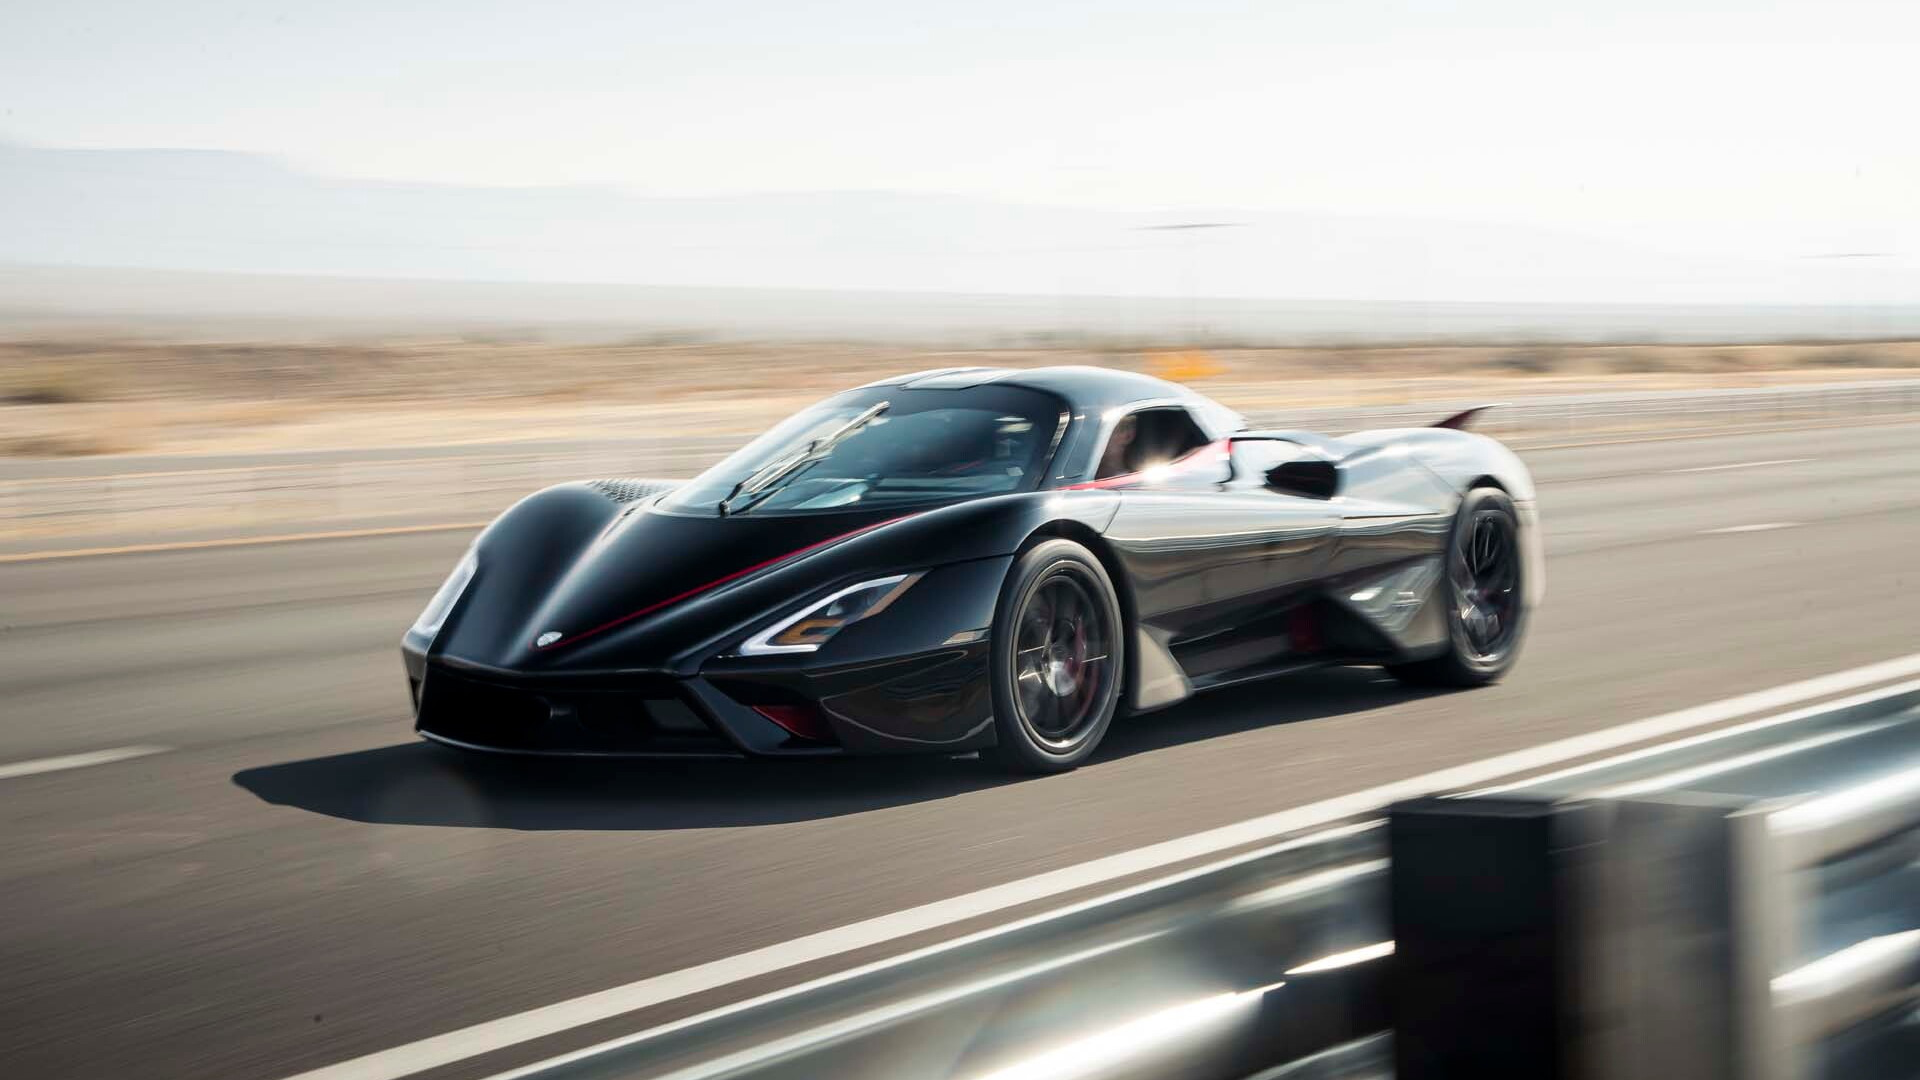 SSC Tuatara is officially the fastest production auto in the world